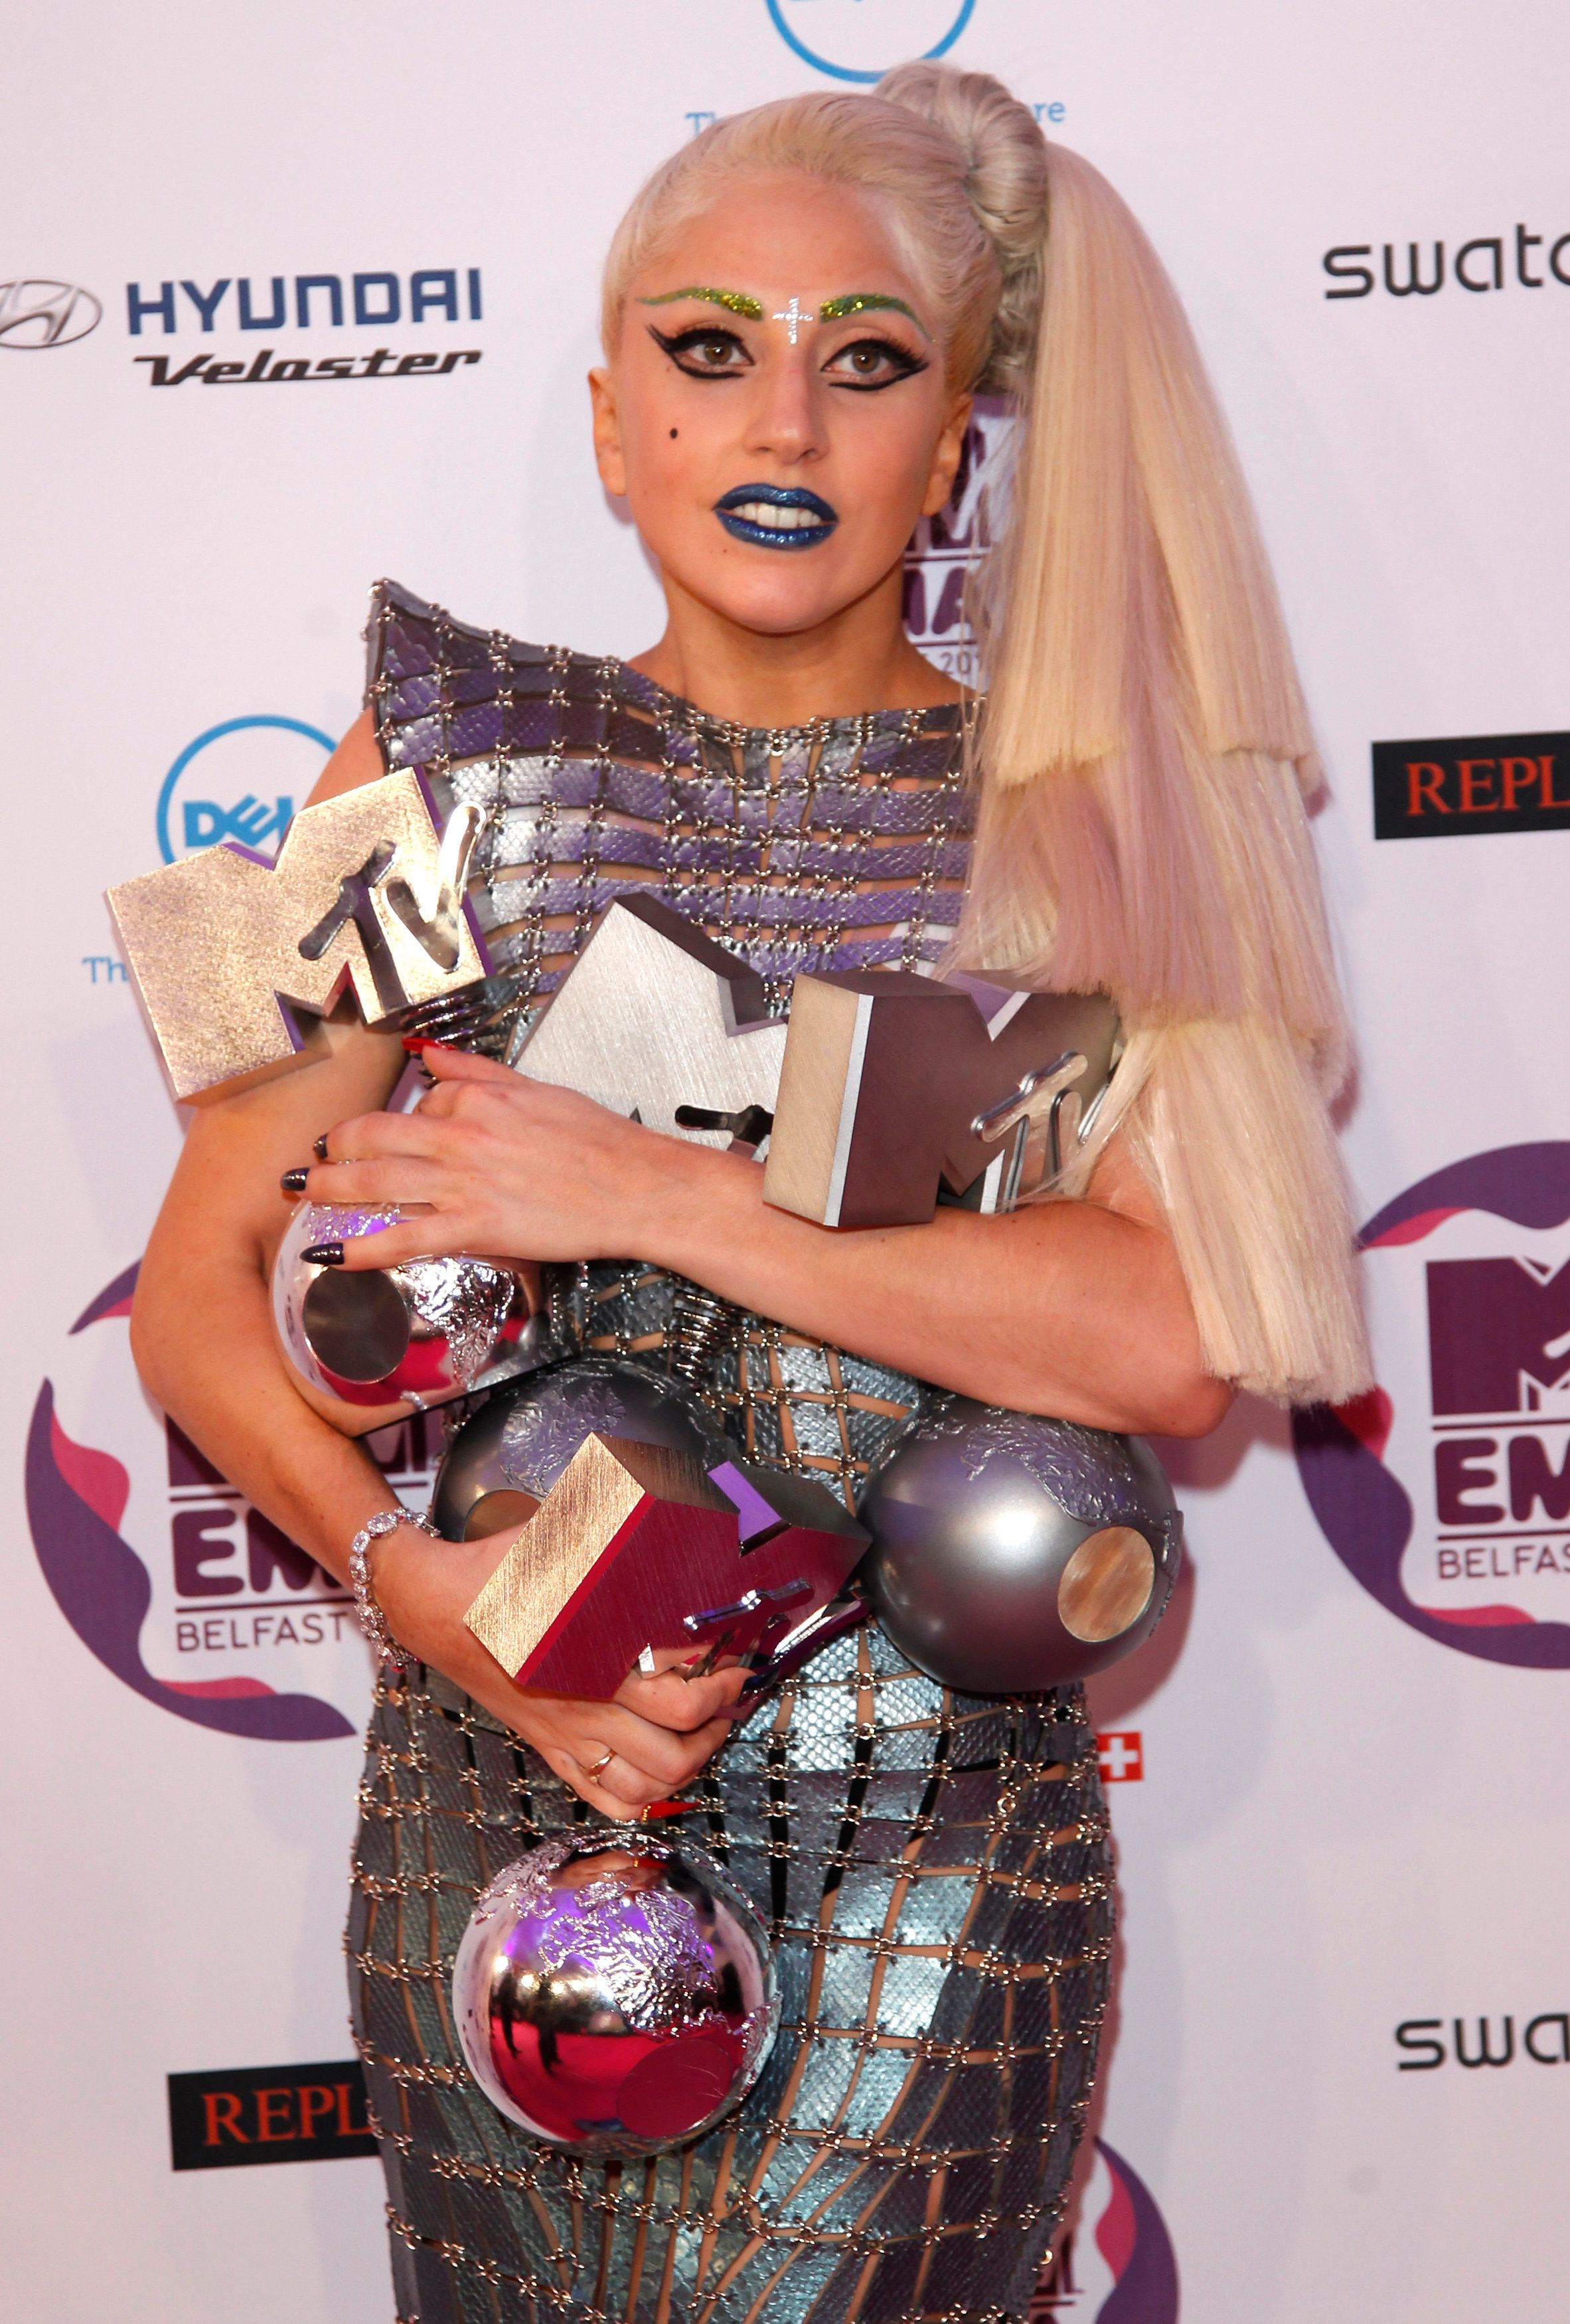 Lady Gaga holds her four awards after the show at the MTV Europe Music Awards show in Belfast November 6, 2011.                          REUTERS/Luke Macgregor (NORTHERN IRELAND  - Tags: ENTERTAINMENT PROFILE SOCIETY)